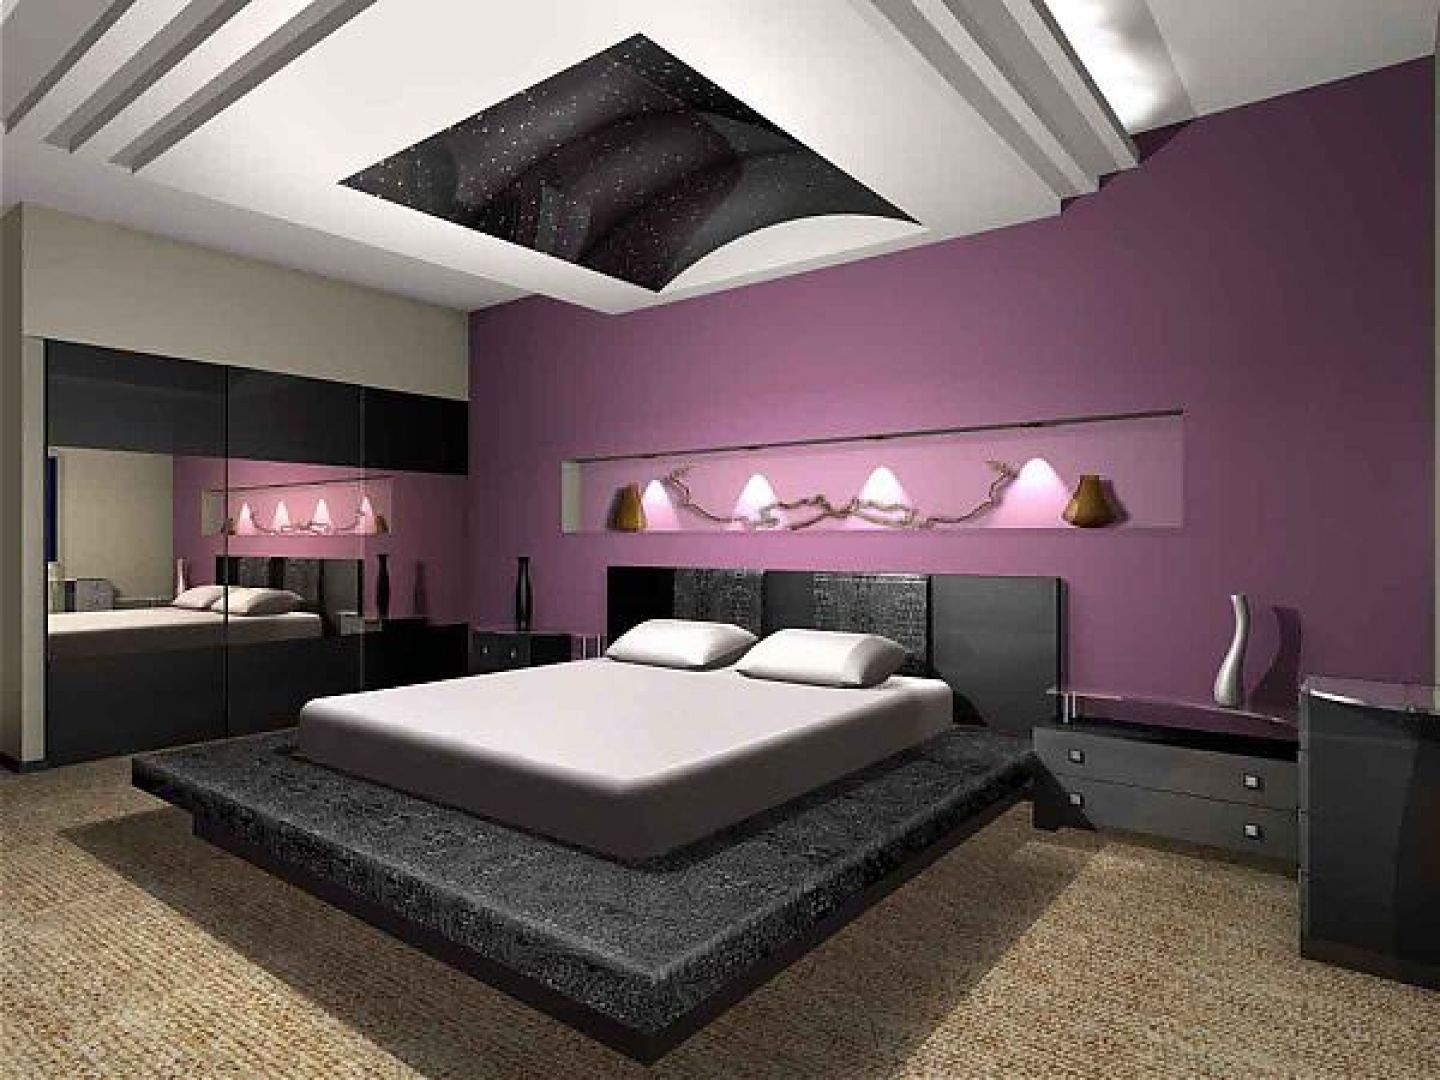 Bedrooms, Impressive Large Space Bedroom Design Inspiration With ...